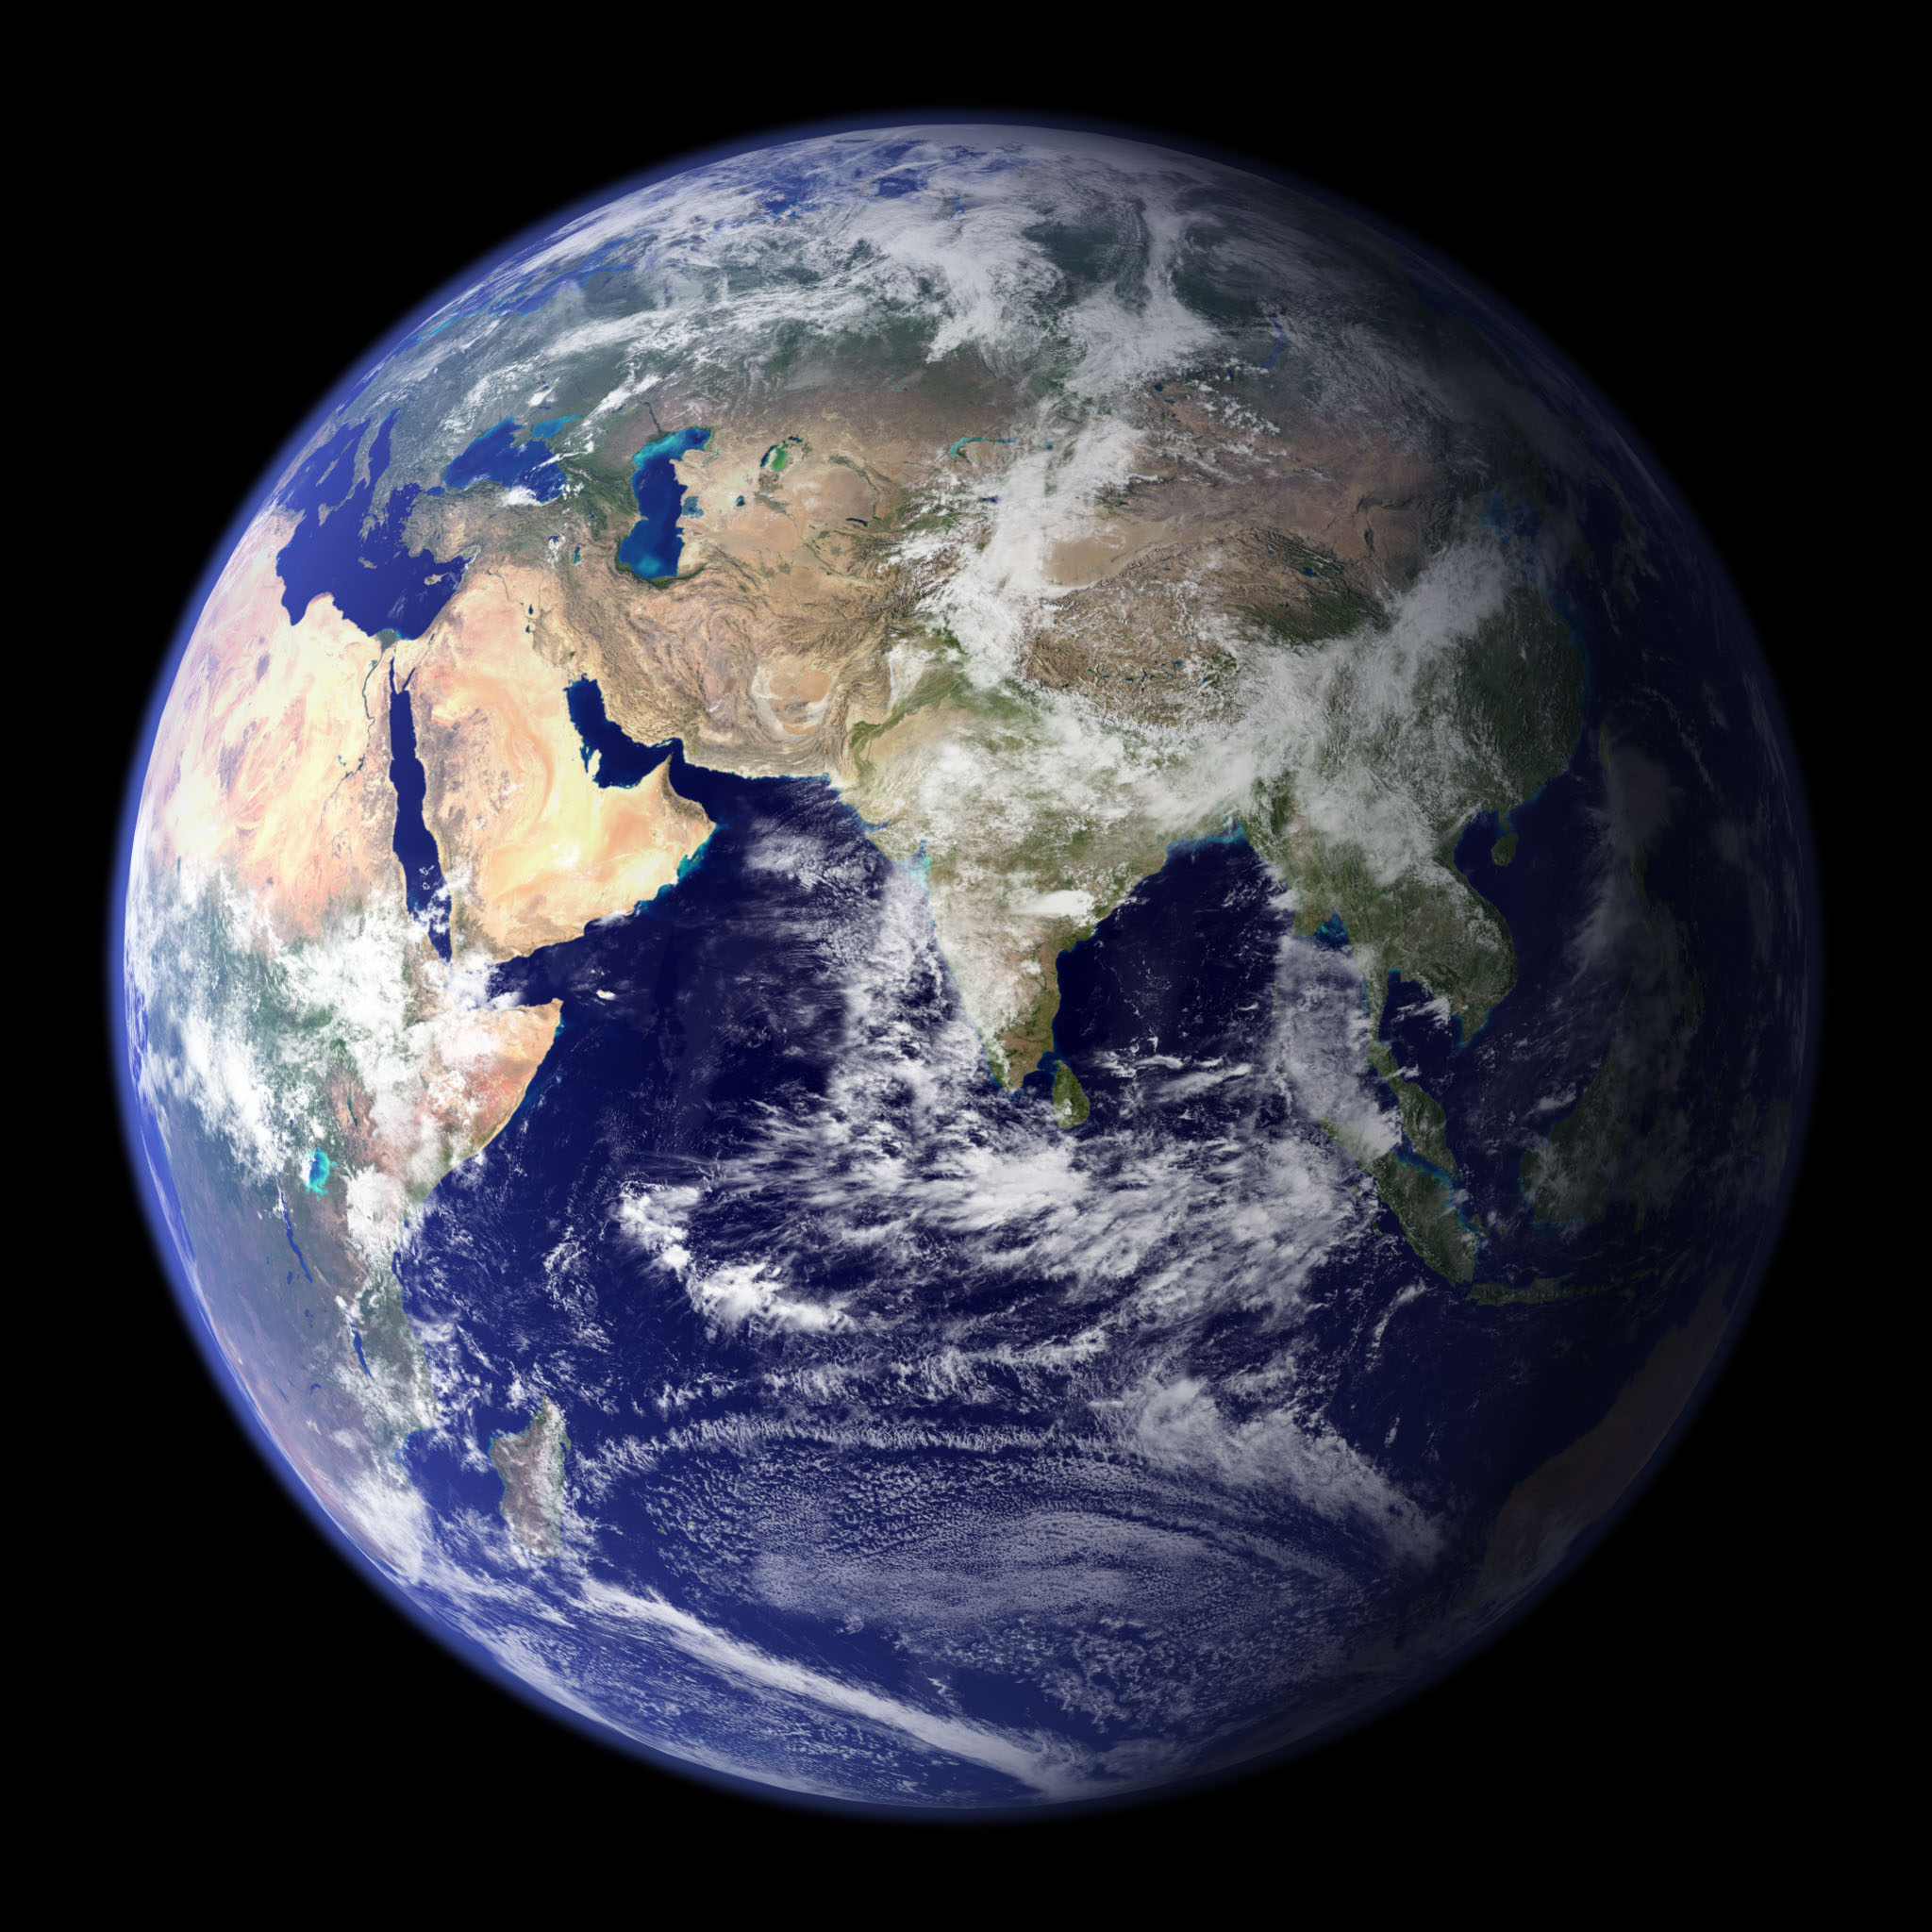 NASA Visible Earth: The Blue Marble